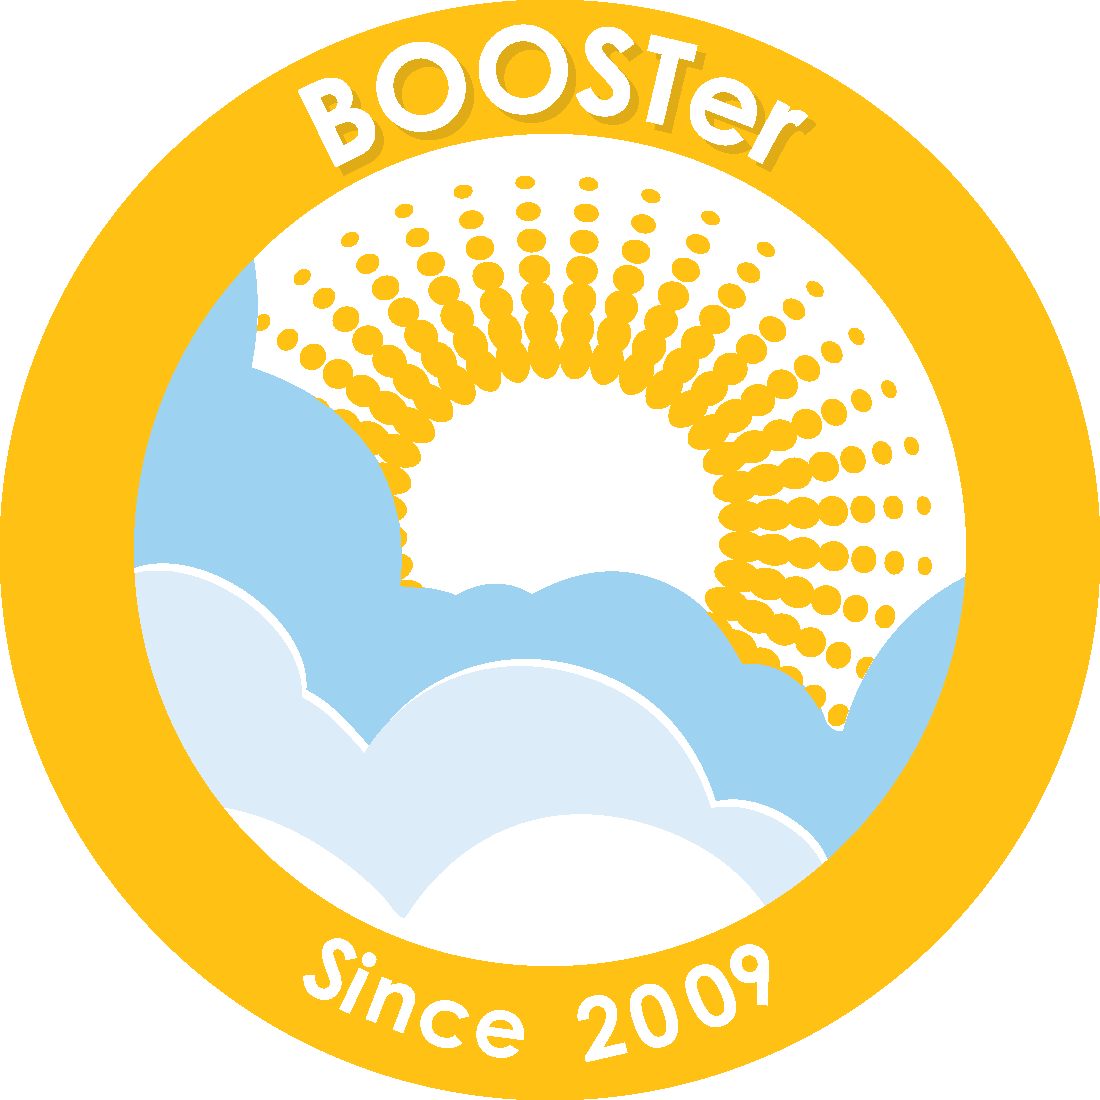 2009 BOOSTer Since badge